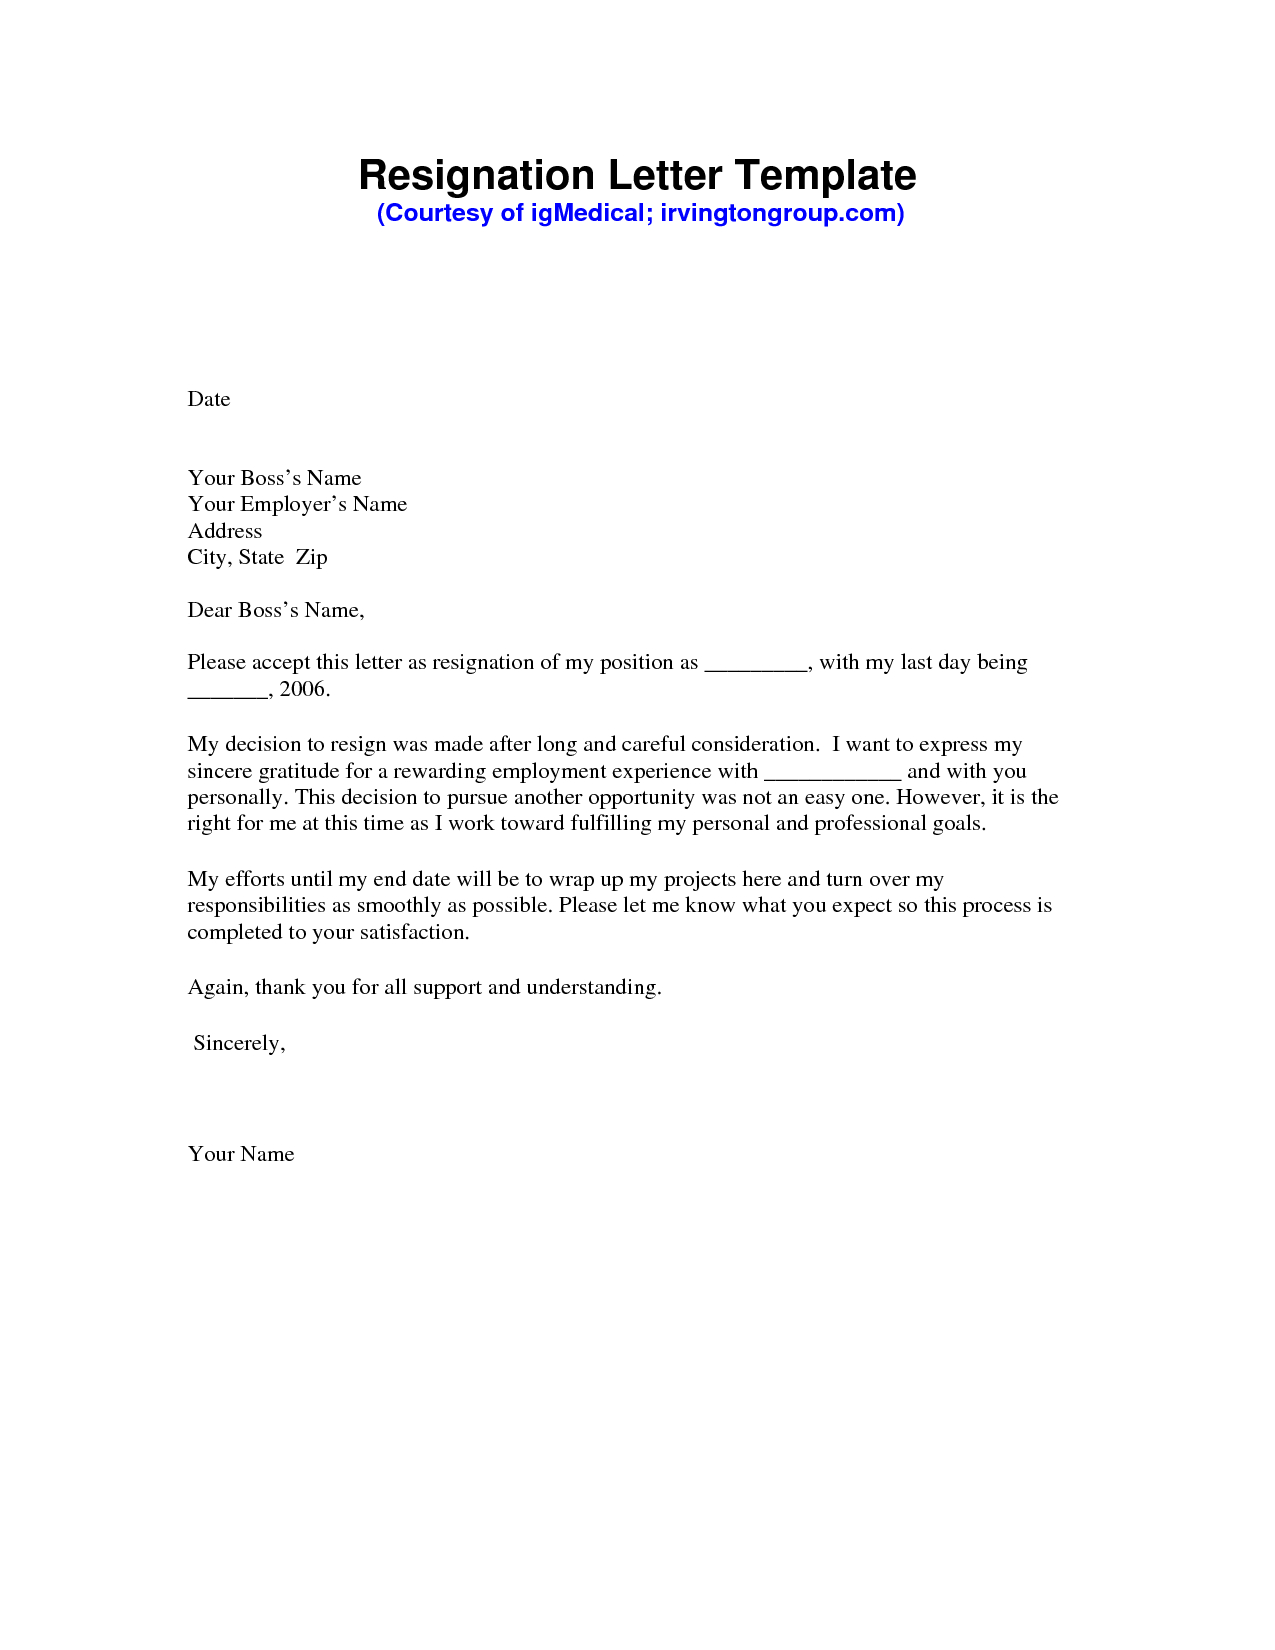 Judgement Proof Letter Template - Resignation Letter Sample Pdf Resignation Letter